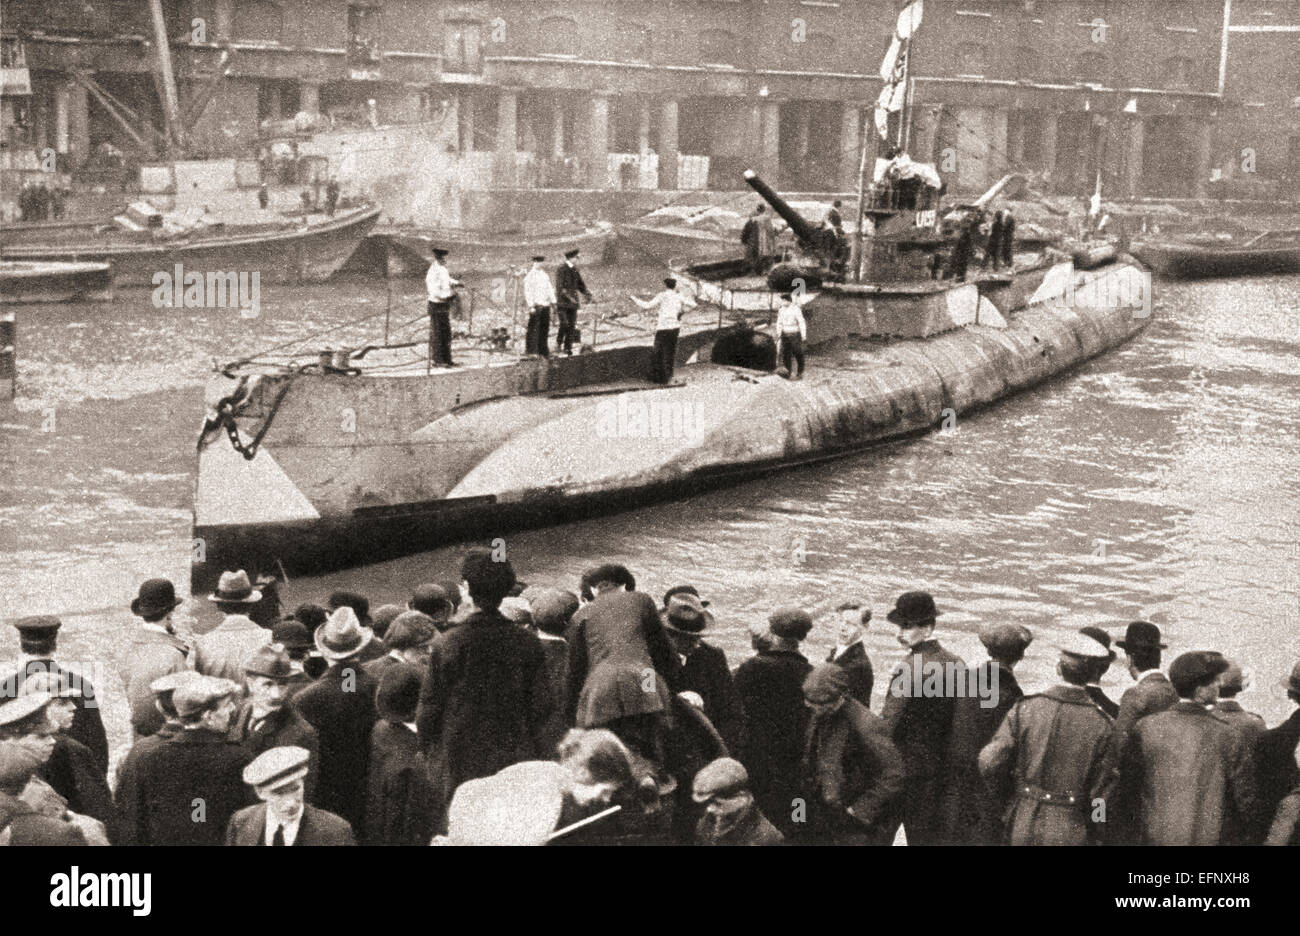 The German submarine U-155 on display in St. Katherine docks, London, England at the end of World War One. - Stock Image